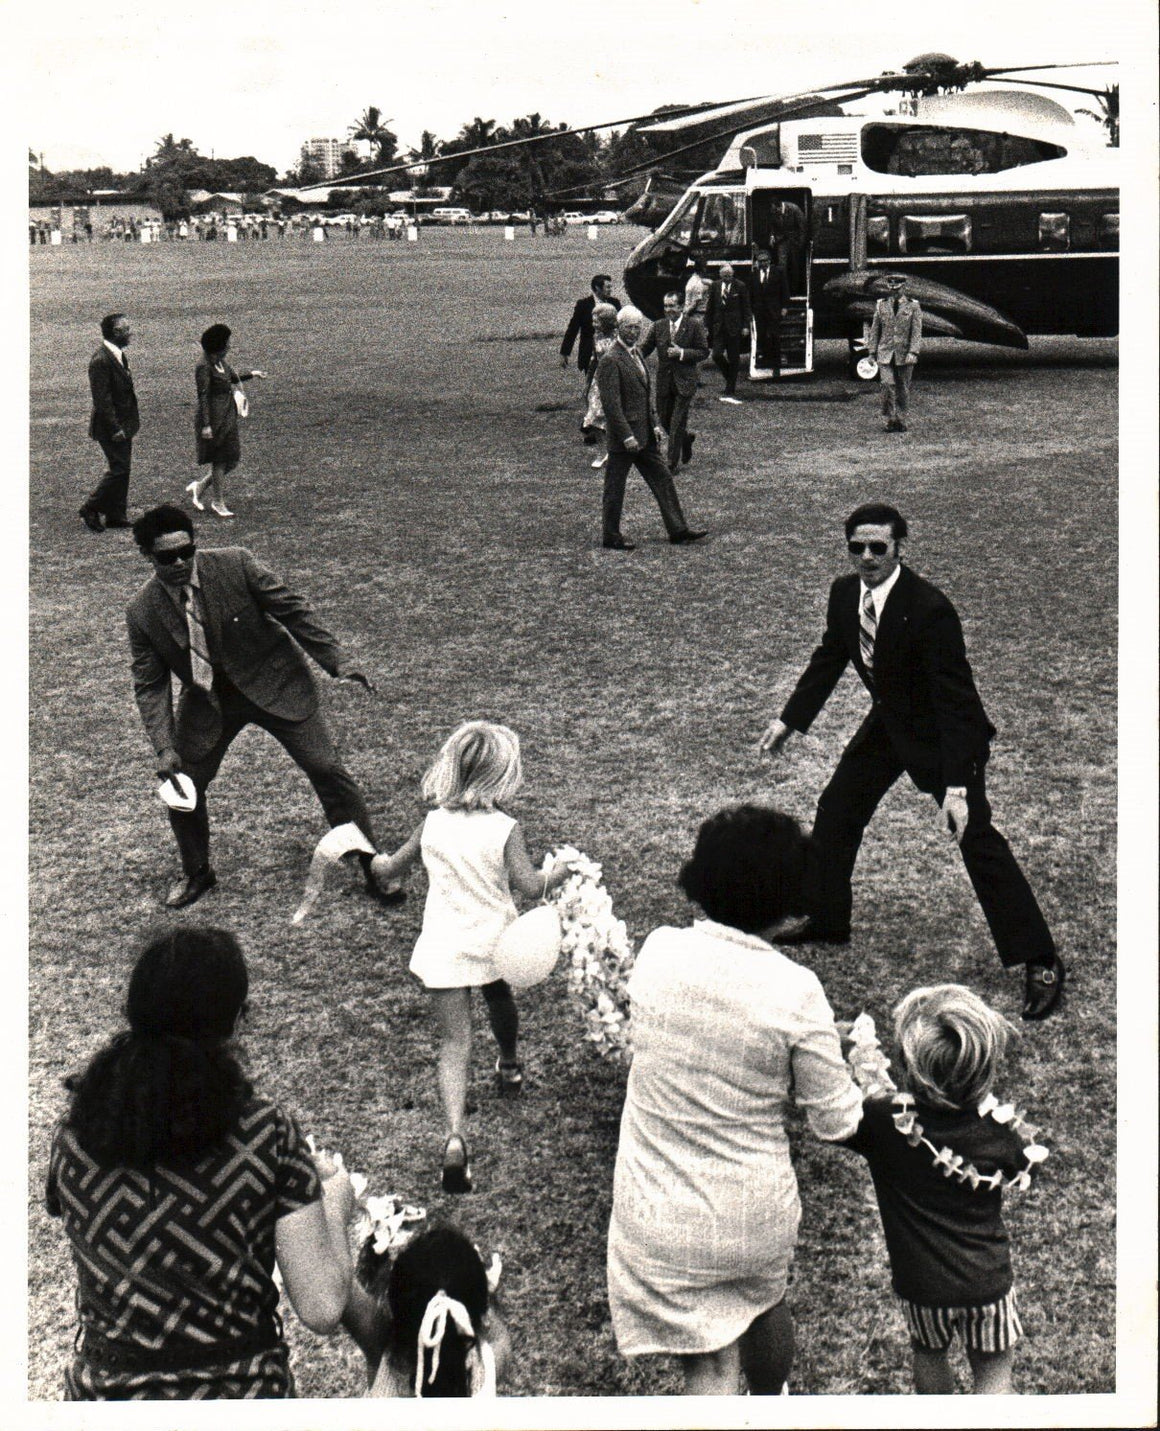 Bob Young Pulitzer Prize Photo of Nixon Young Girl Running and Secret Service